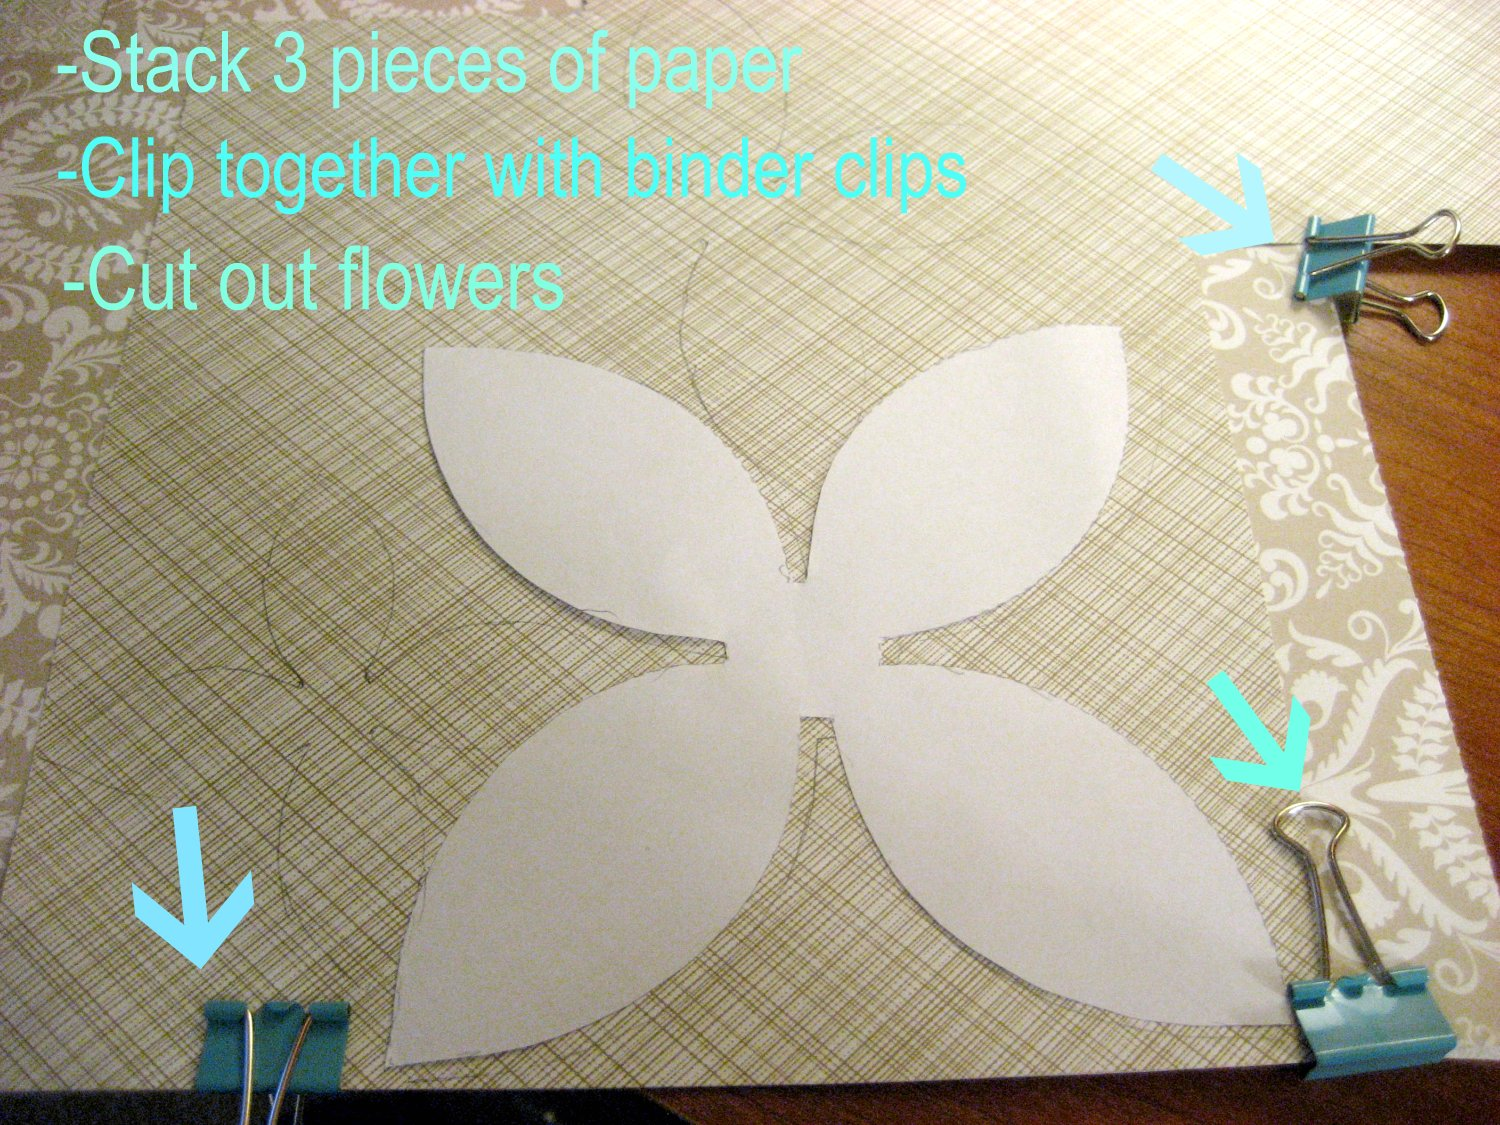 Paper Flowers Template You have 3x the flowers. haha!